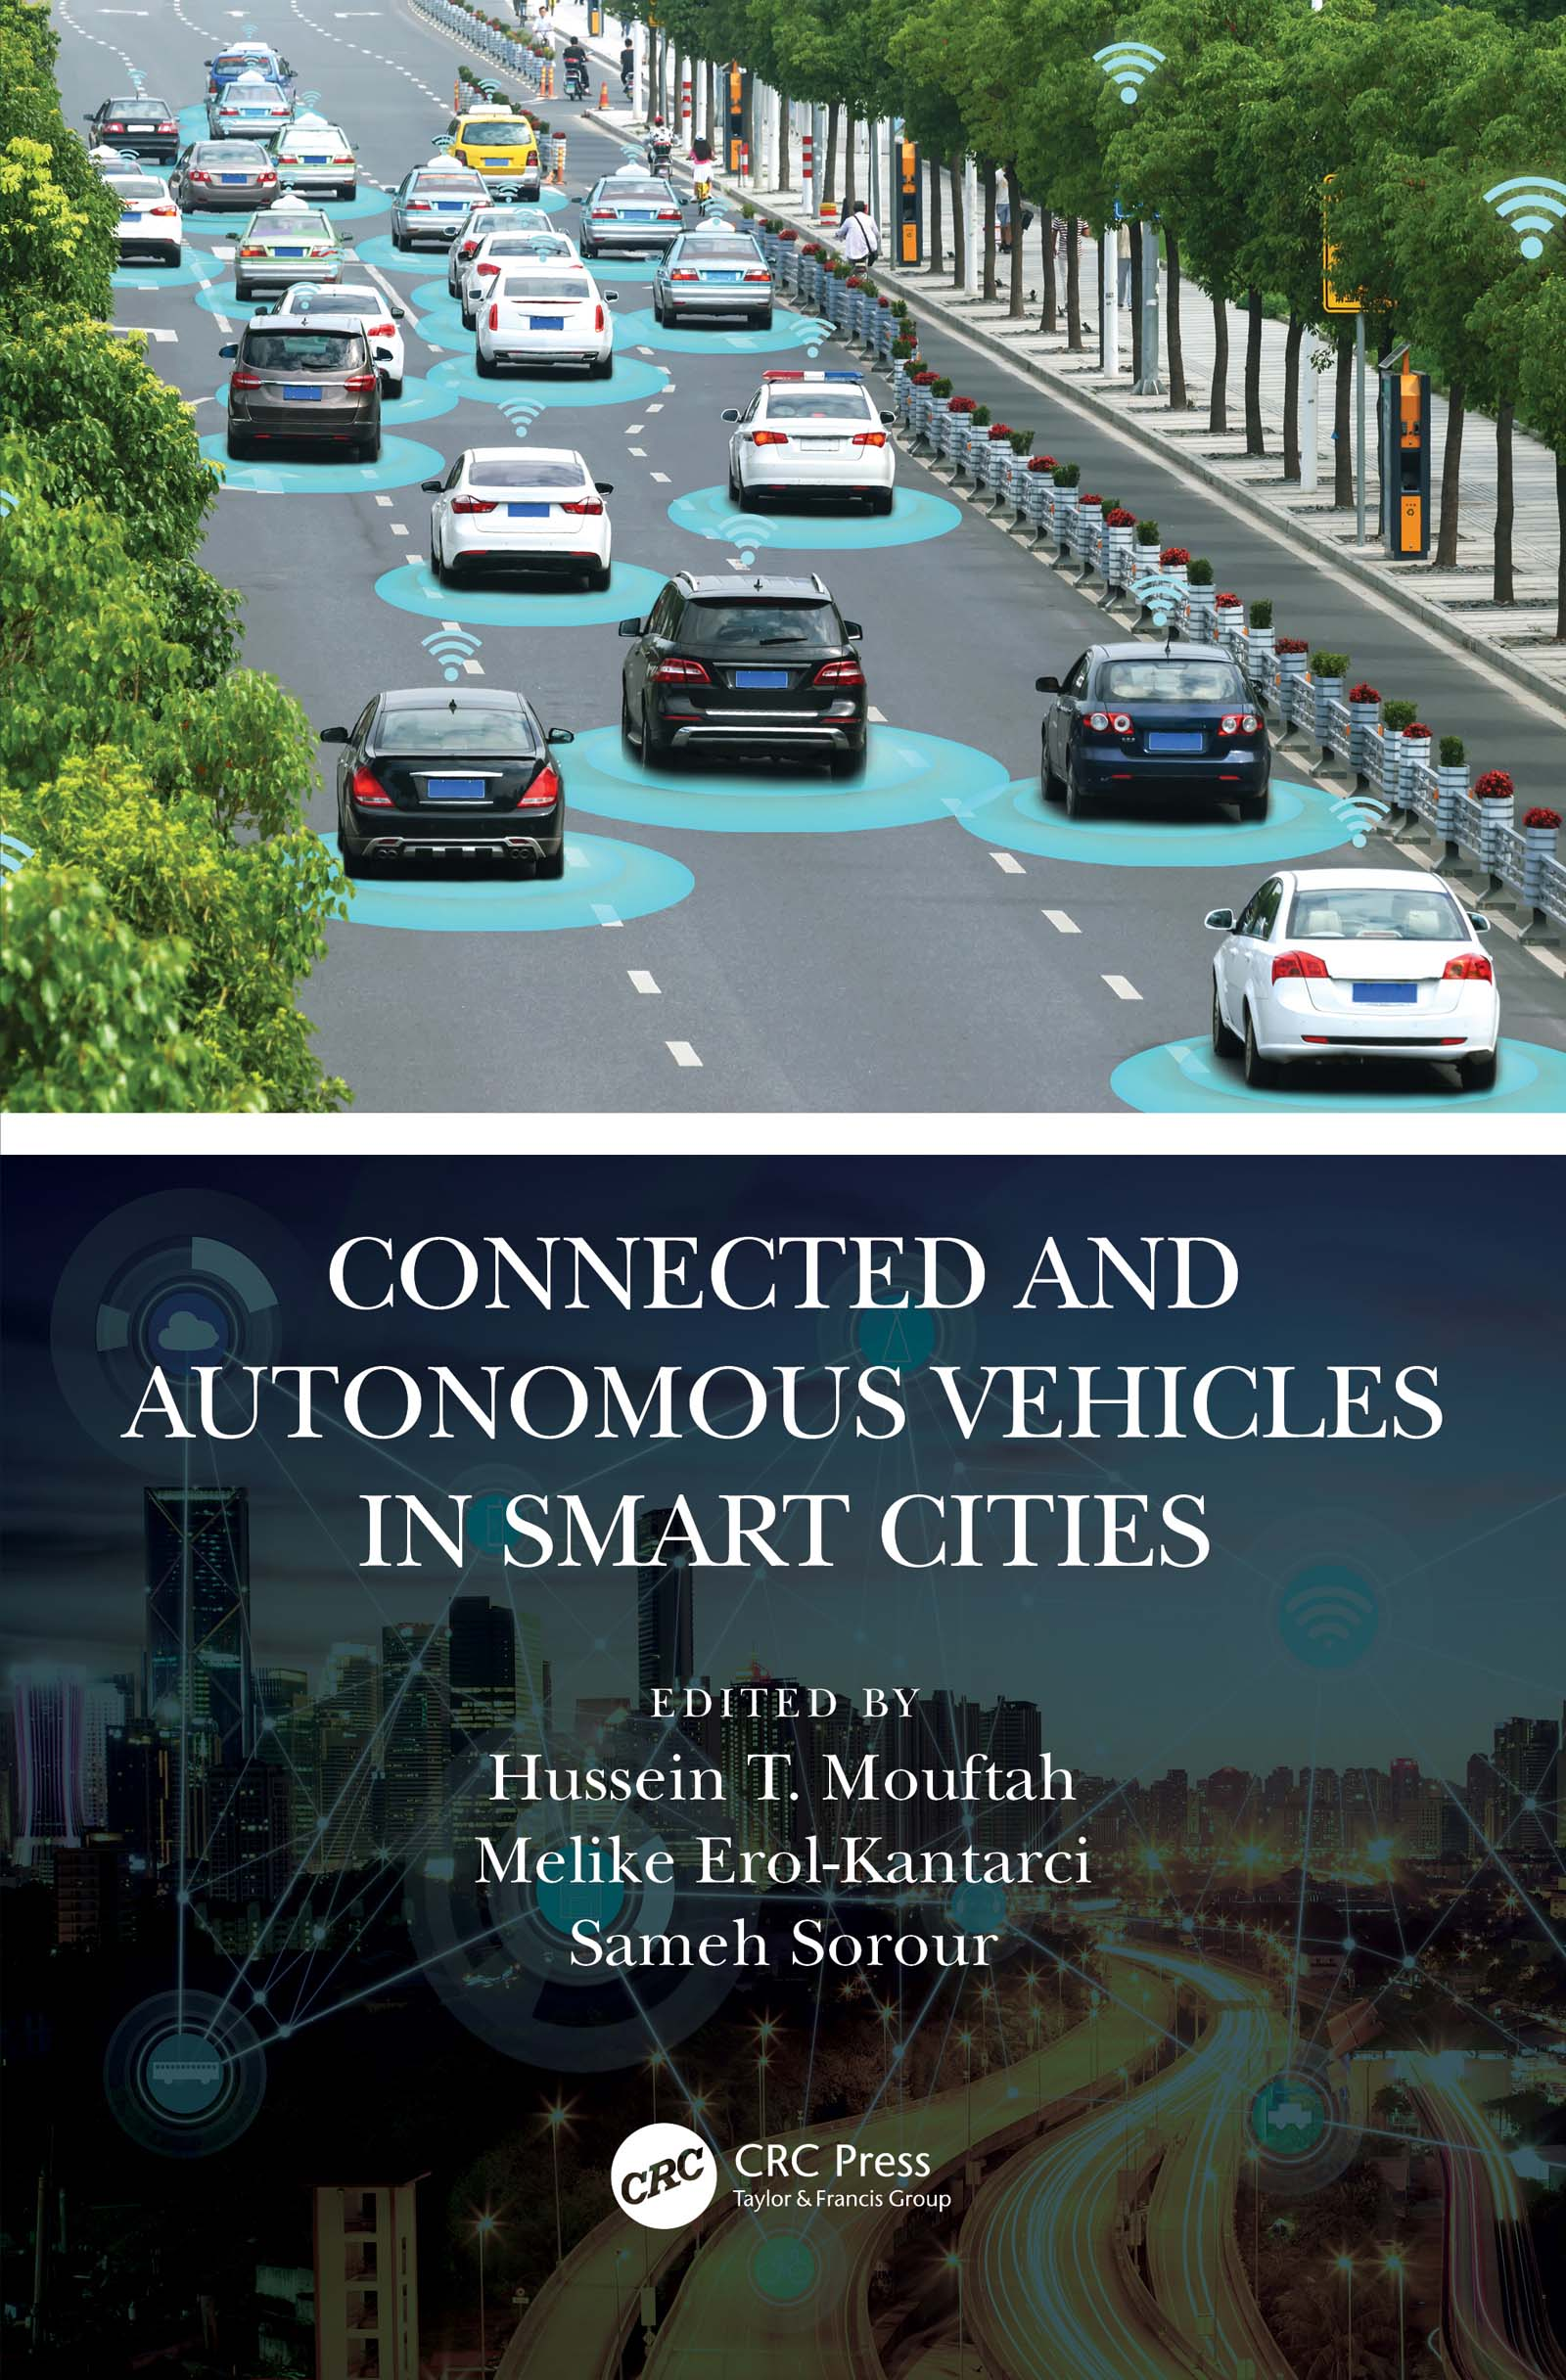 Connected and Autonomous Vehicles in Smart Cities